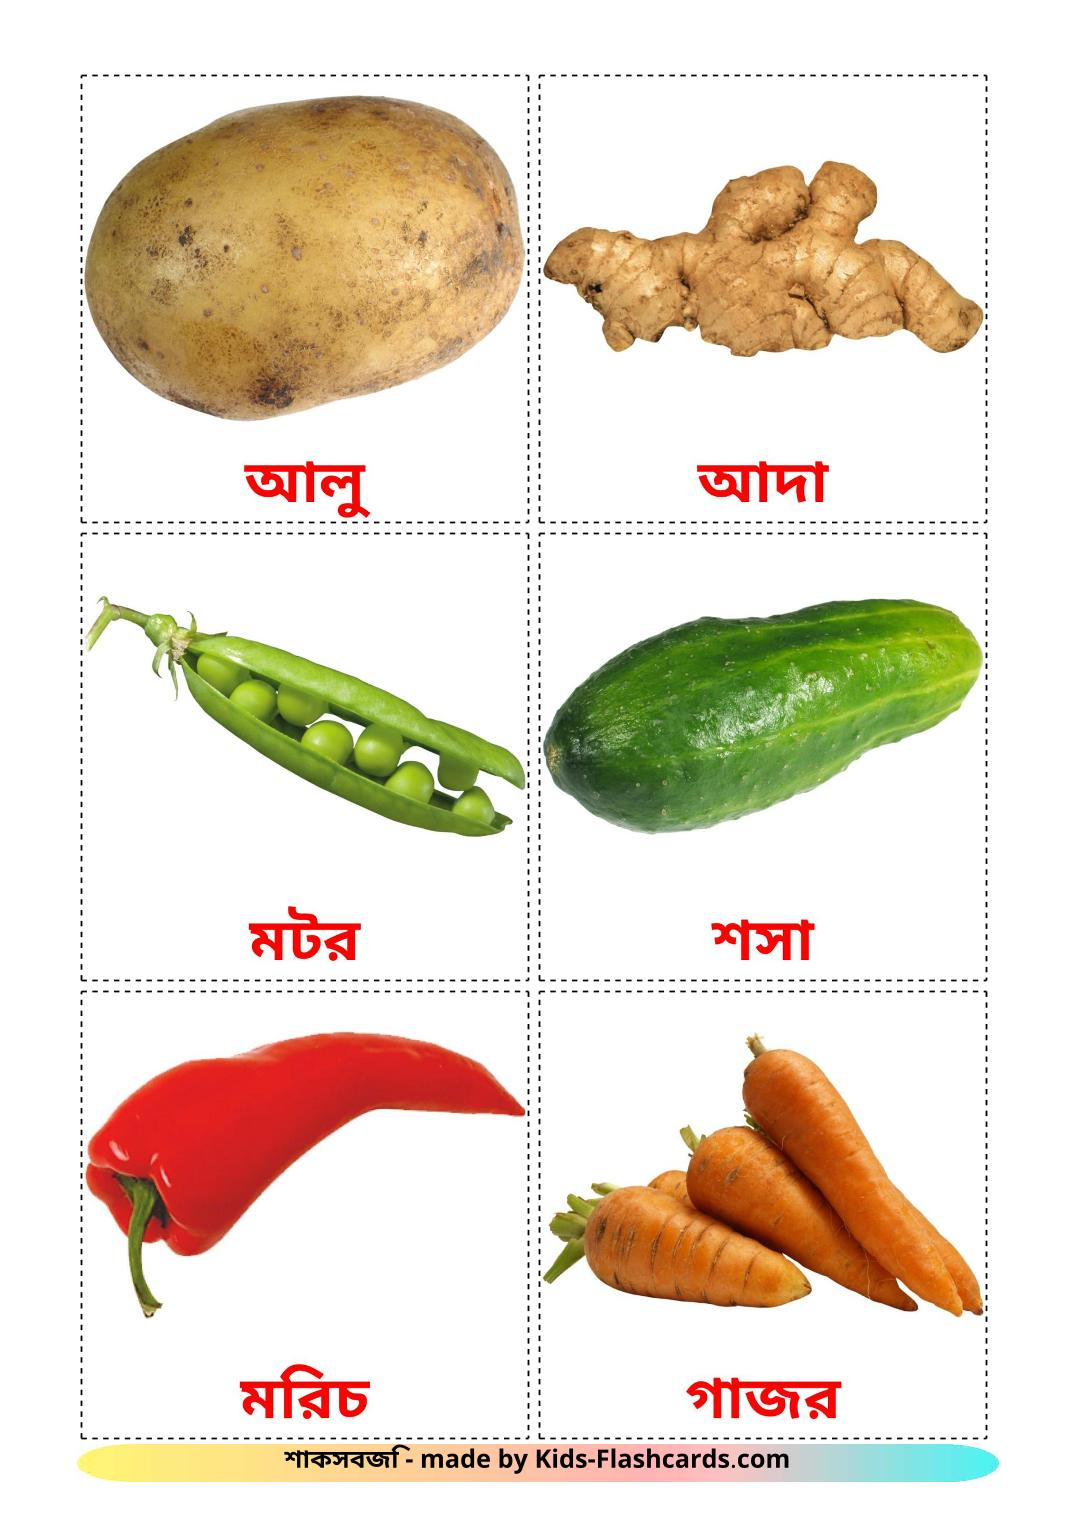 Vegetables - 29 Free Printable bengali Flashcards